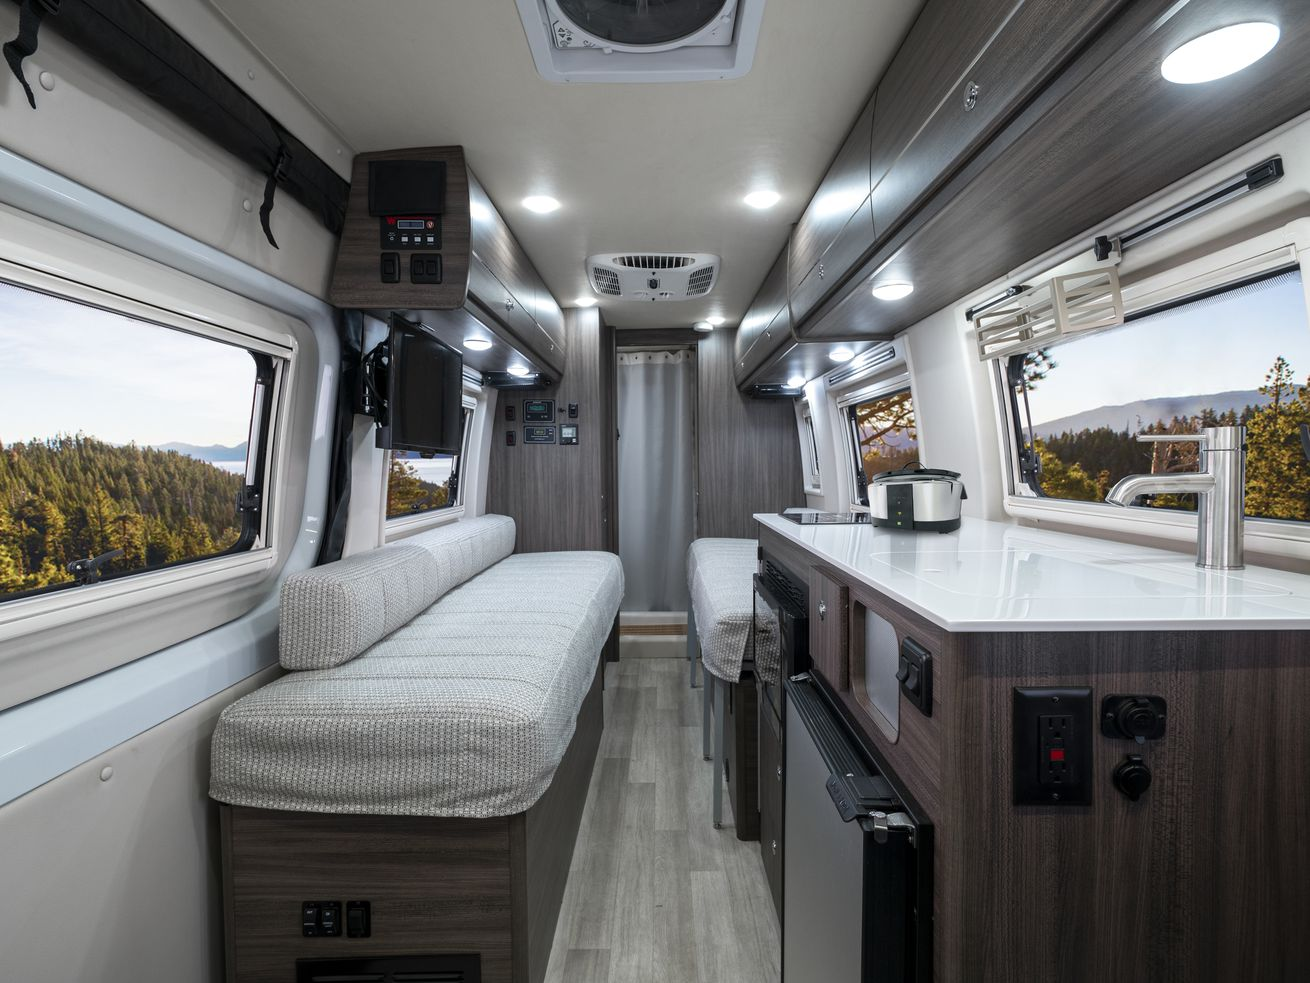 Winnebago?s new camper van is prepped for off-grid adventure